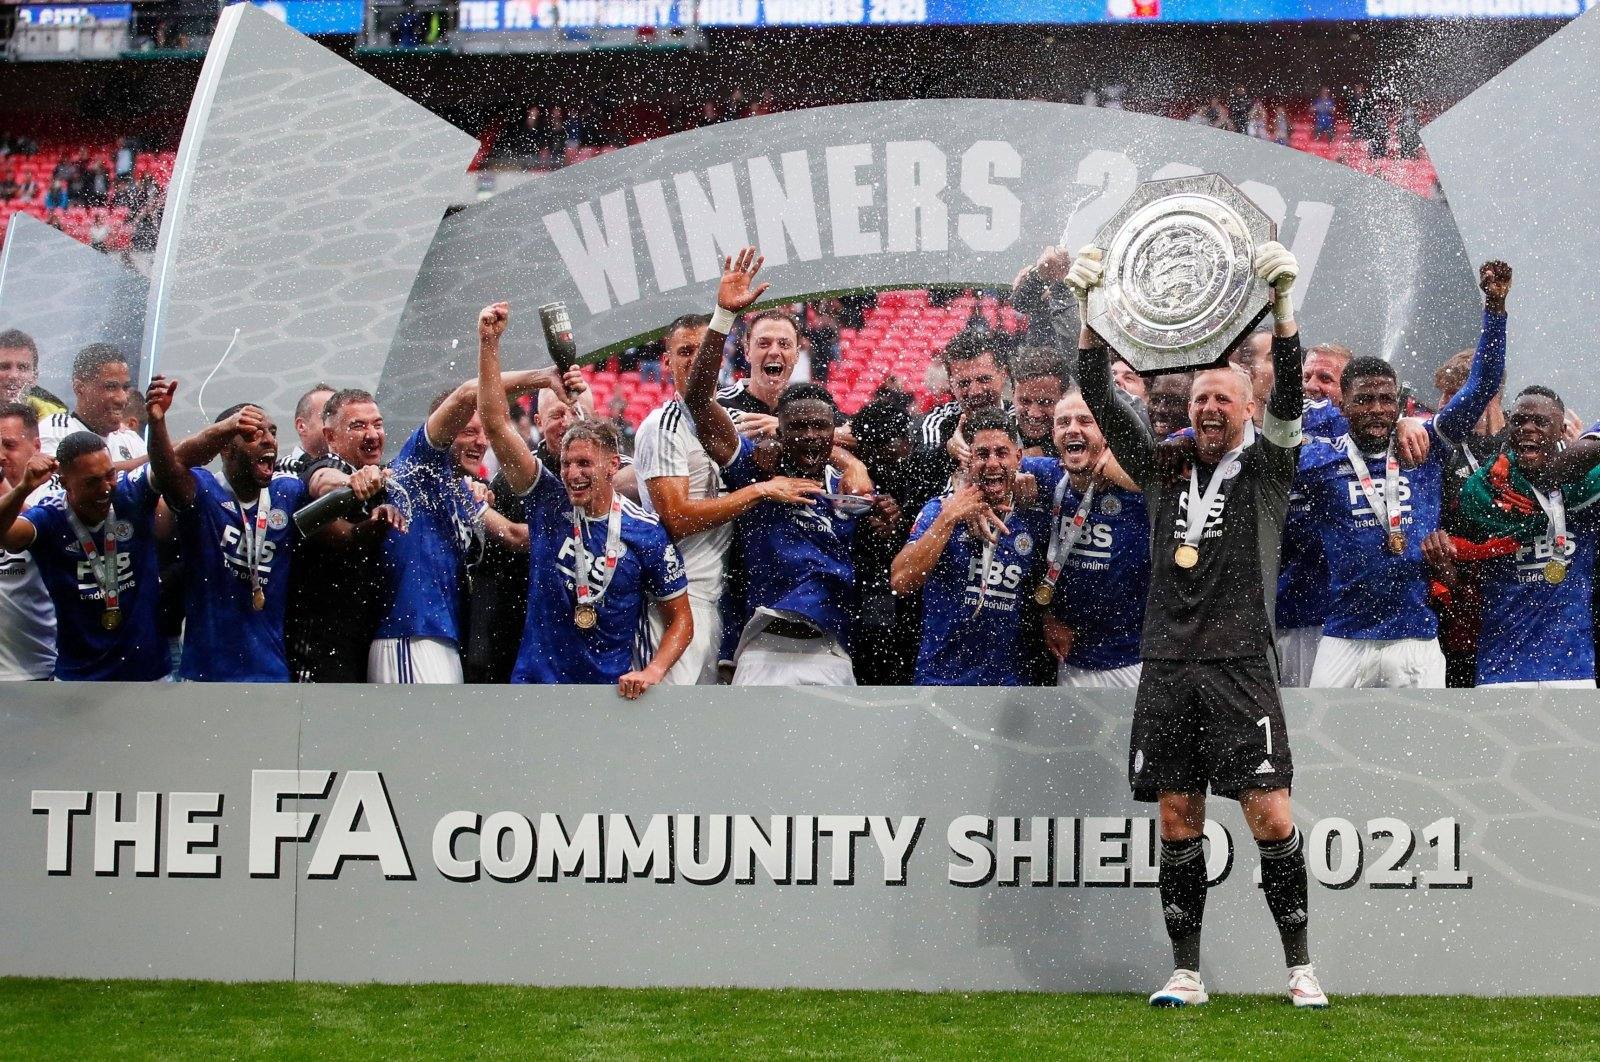 Leicester City's Kasper Schmeichel and teammates celebrate with the FA Community Shield trophy after beating Manchester City at theWembley Stadium, London, England,Aug. 7, 2021.